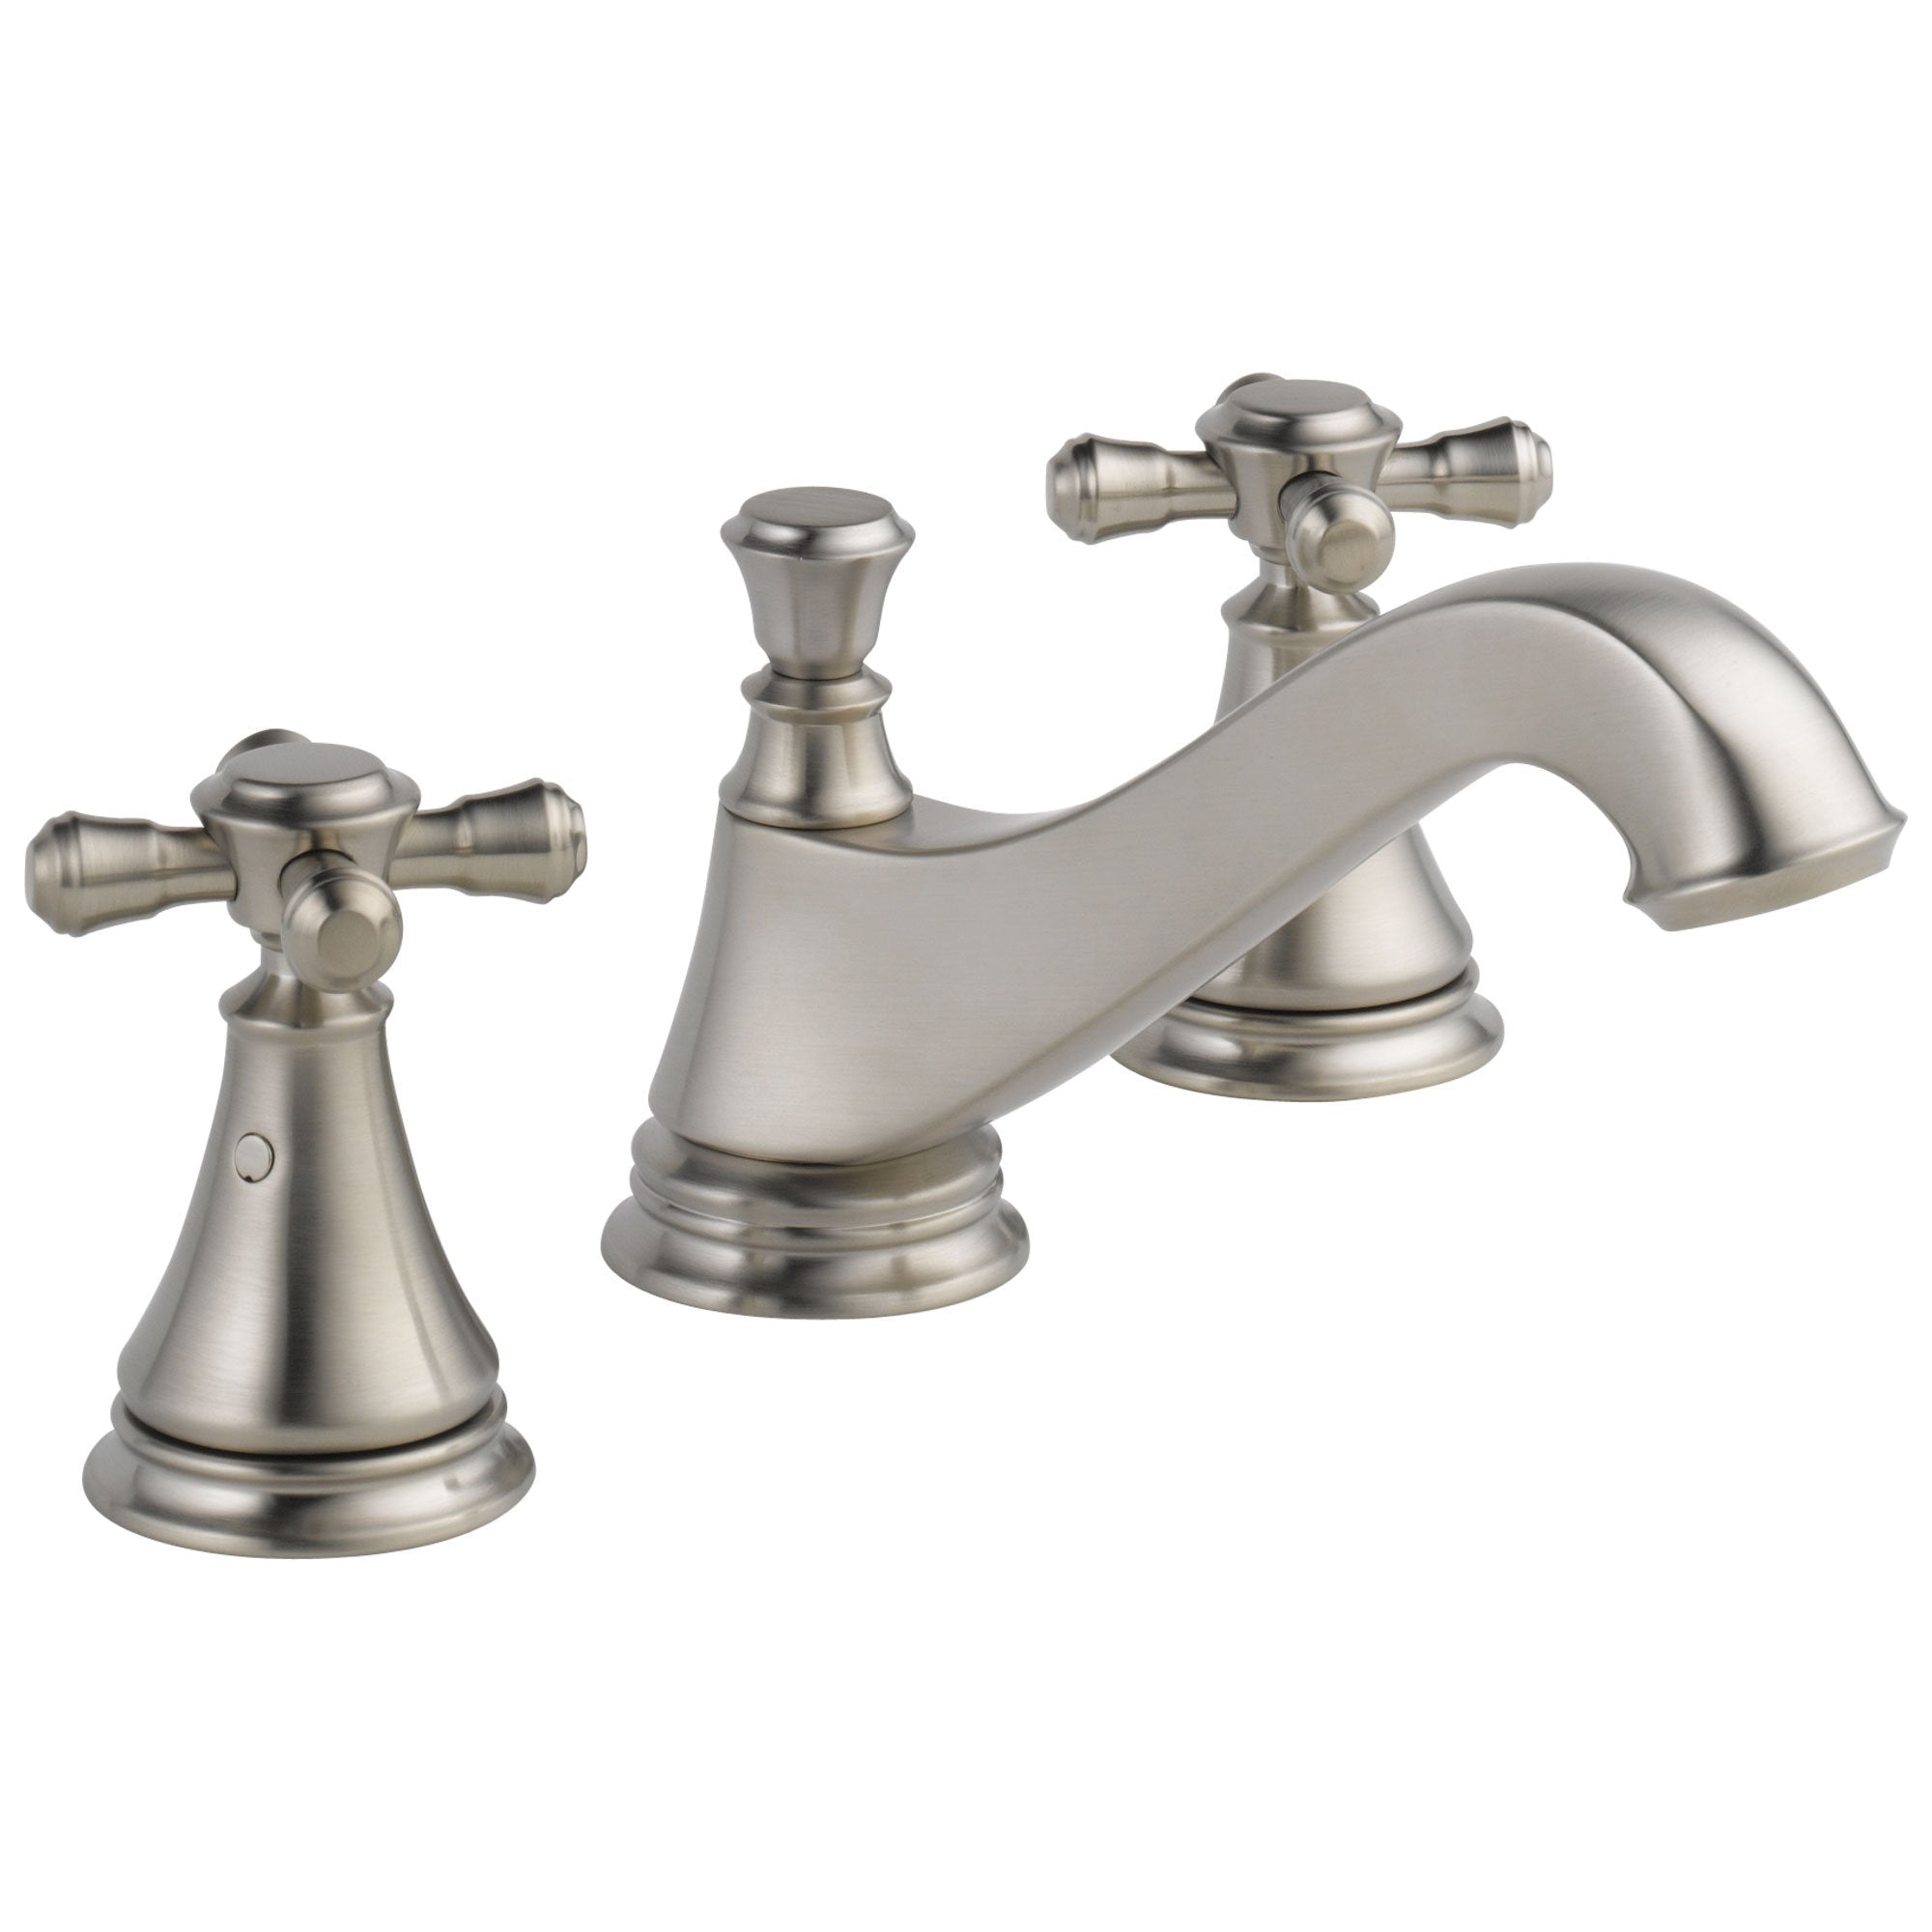 Delta Cassidy Collection Stainless Steel Finish Traditional Low Spout Widespread Lavatory Sink Faucet INCLUDES Two Cross Handles and Drain D1789V